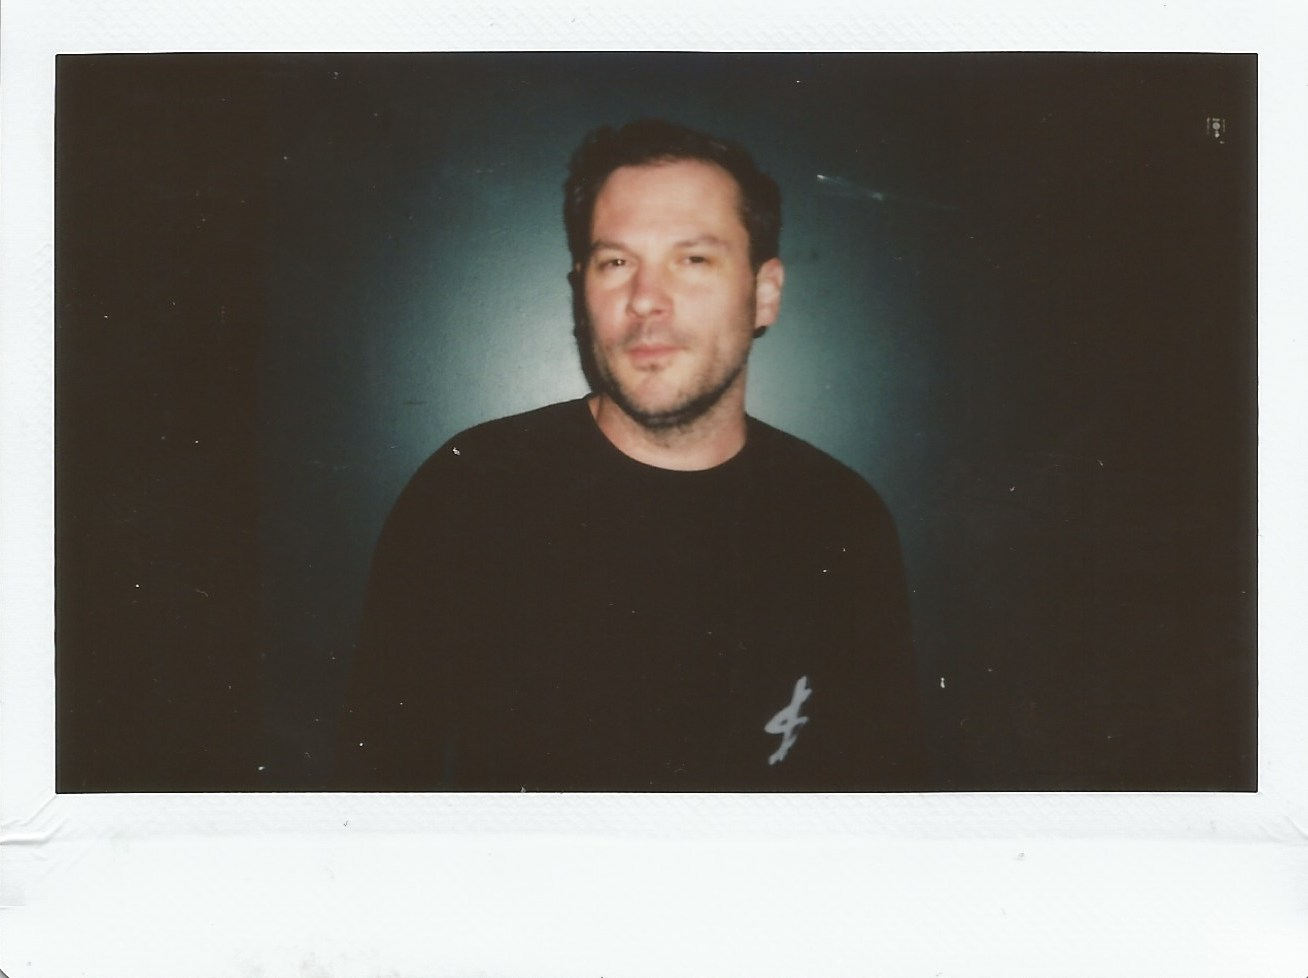 Instax photo by Kari Leigh Ames